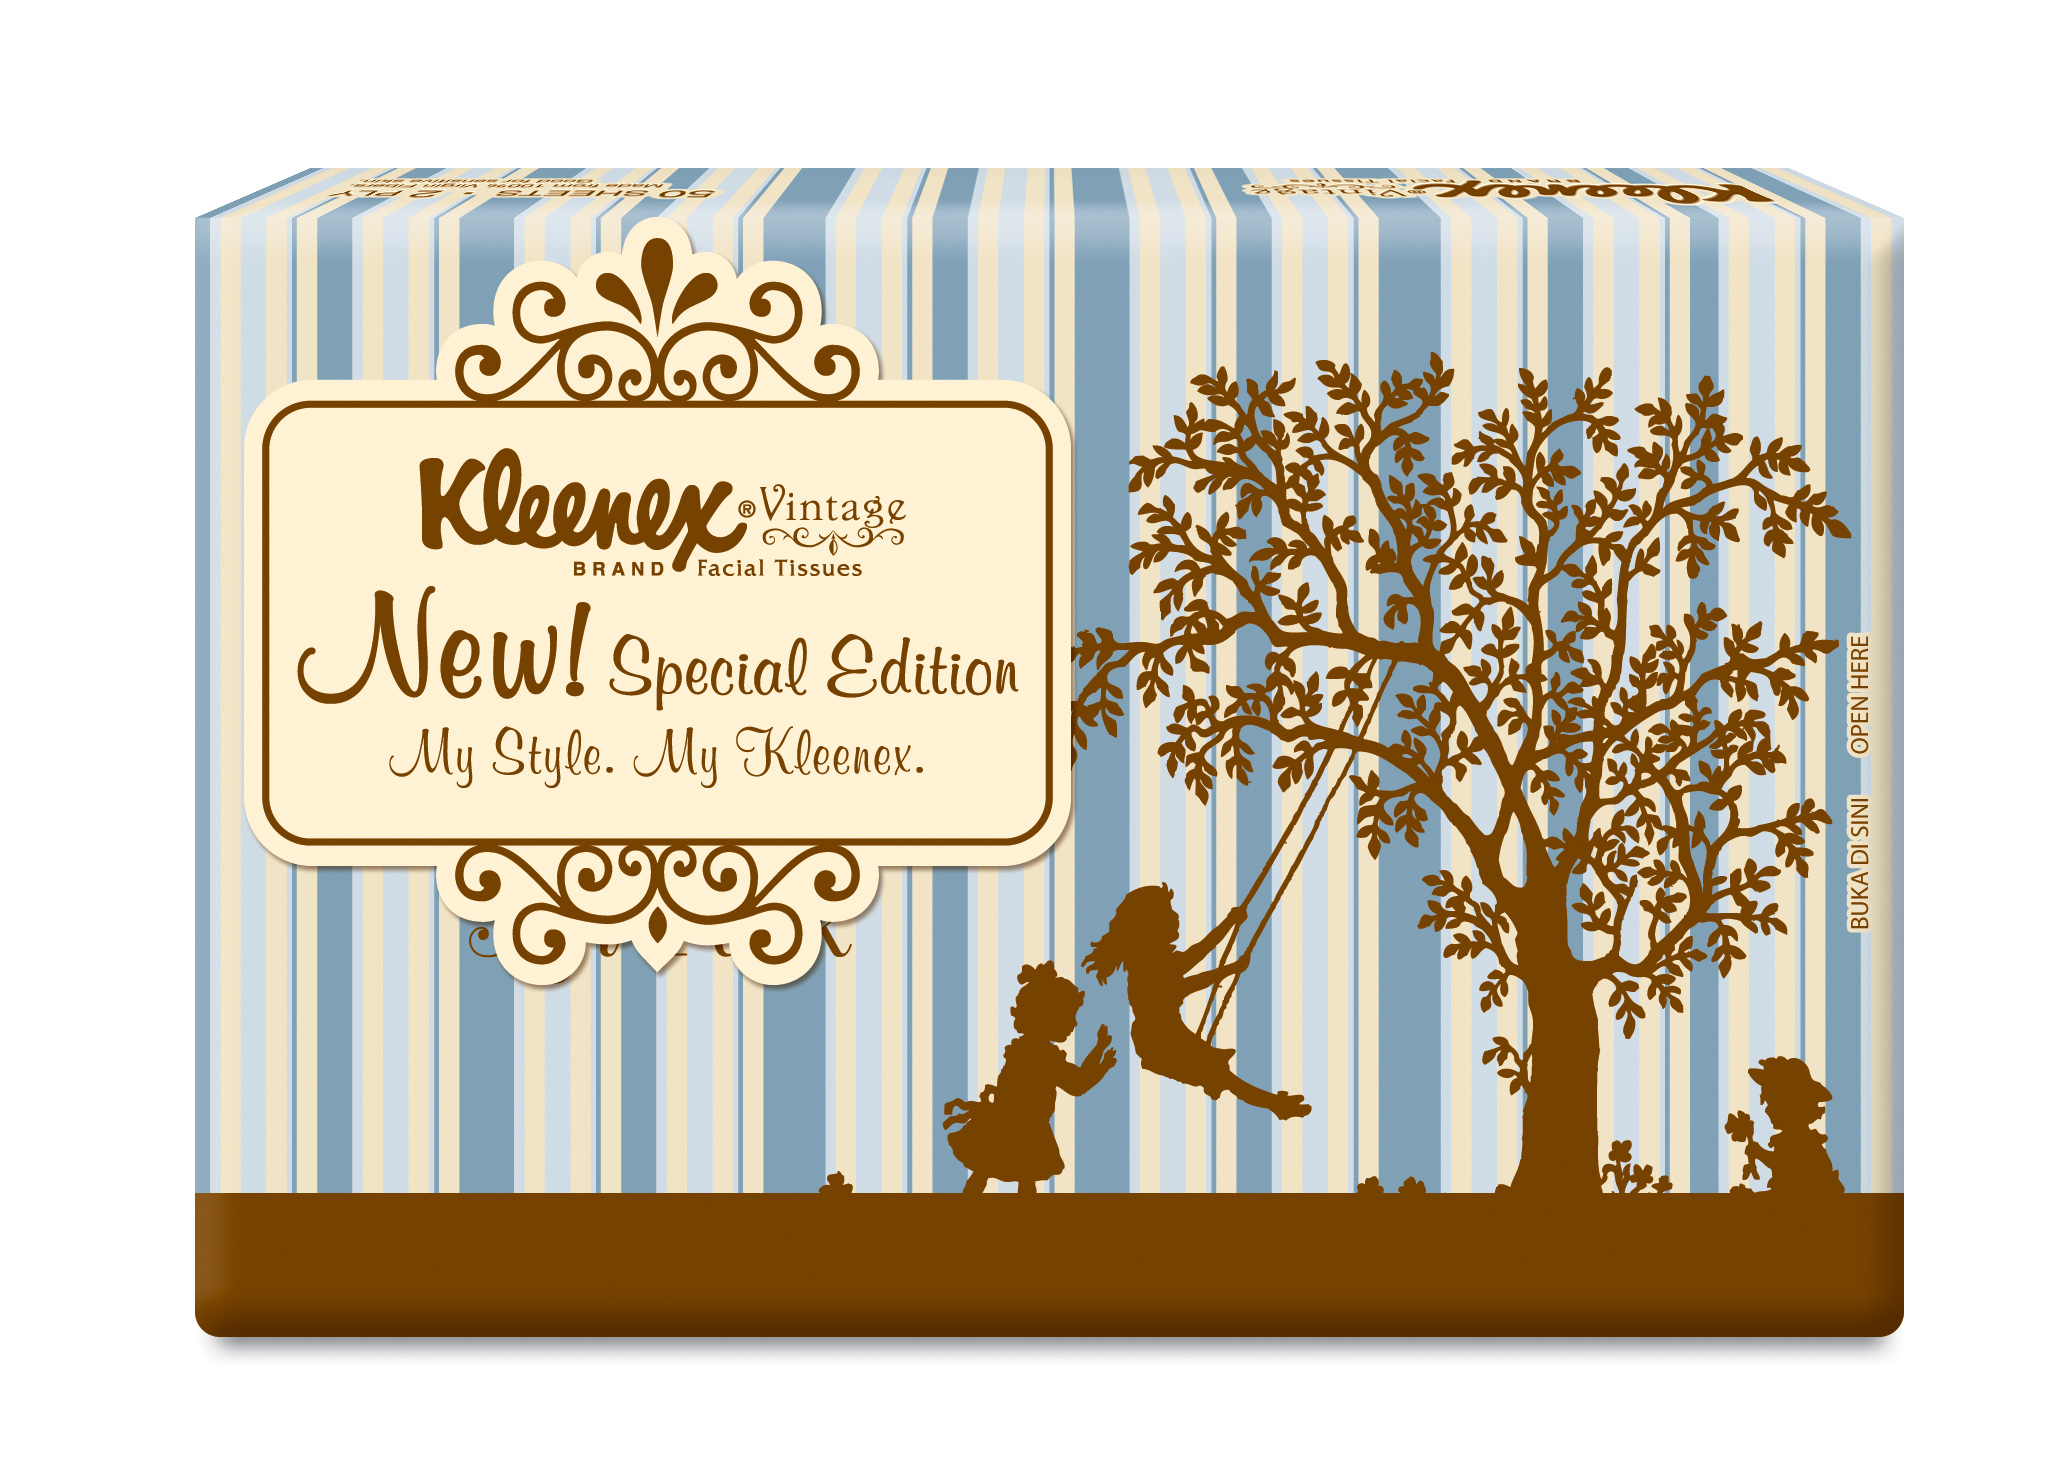 Kleenex Vintage Soft Pack - Brown